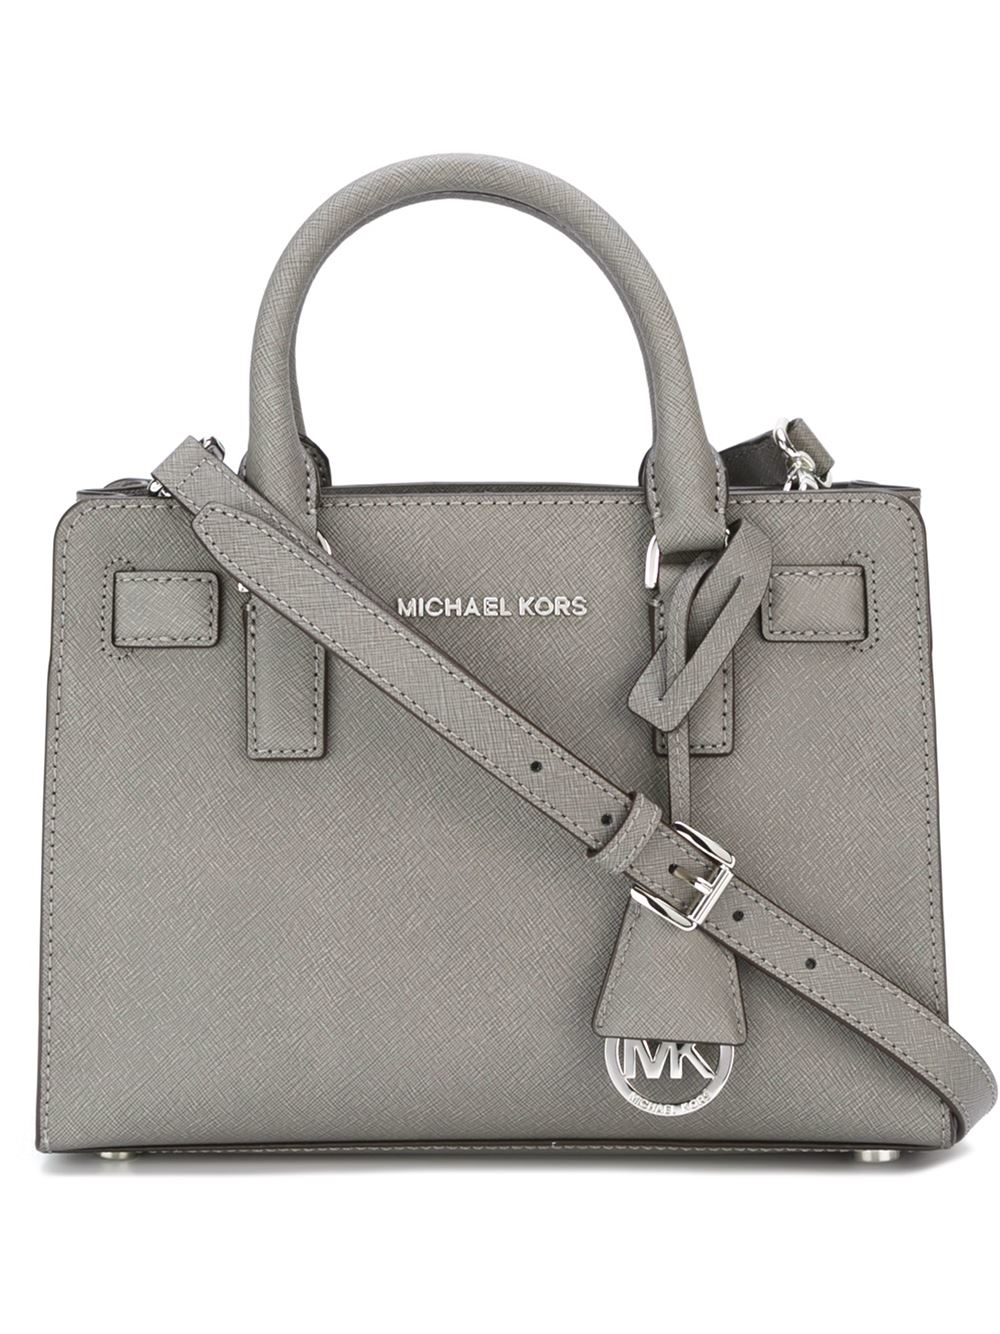 05cfd73895ff Michael Kors Small Grey Tote Bag | Stanford Center for Opportunity ...